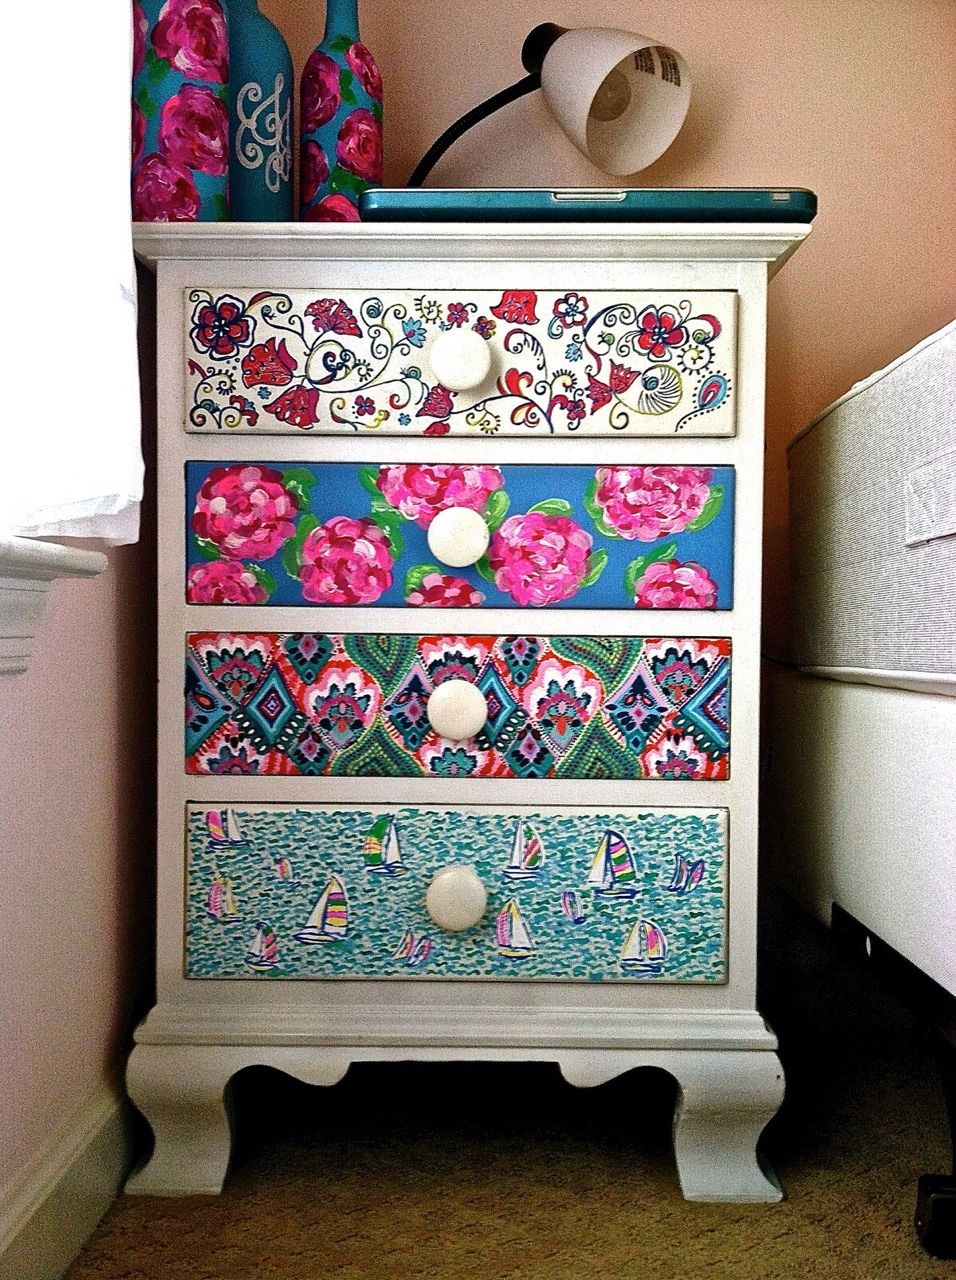 Good Intentions On Doing This With My Own Bedside Table. Just Take Out The  Drawers And Start Painting Away, Or Use Some Cute Wrapping Paper.